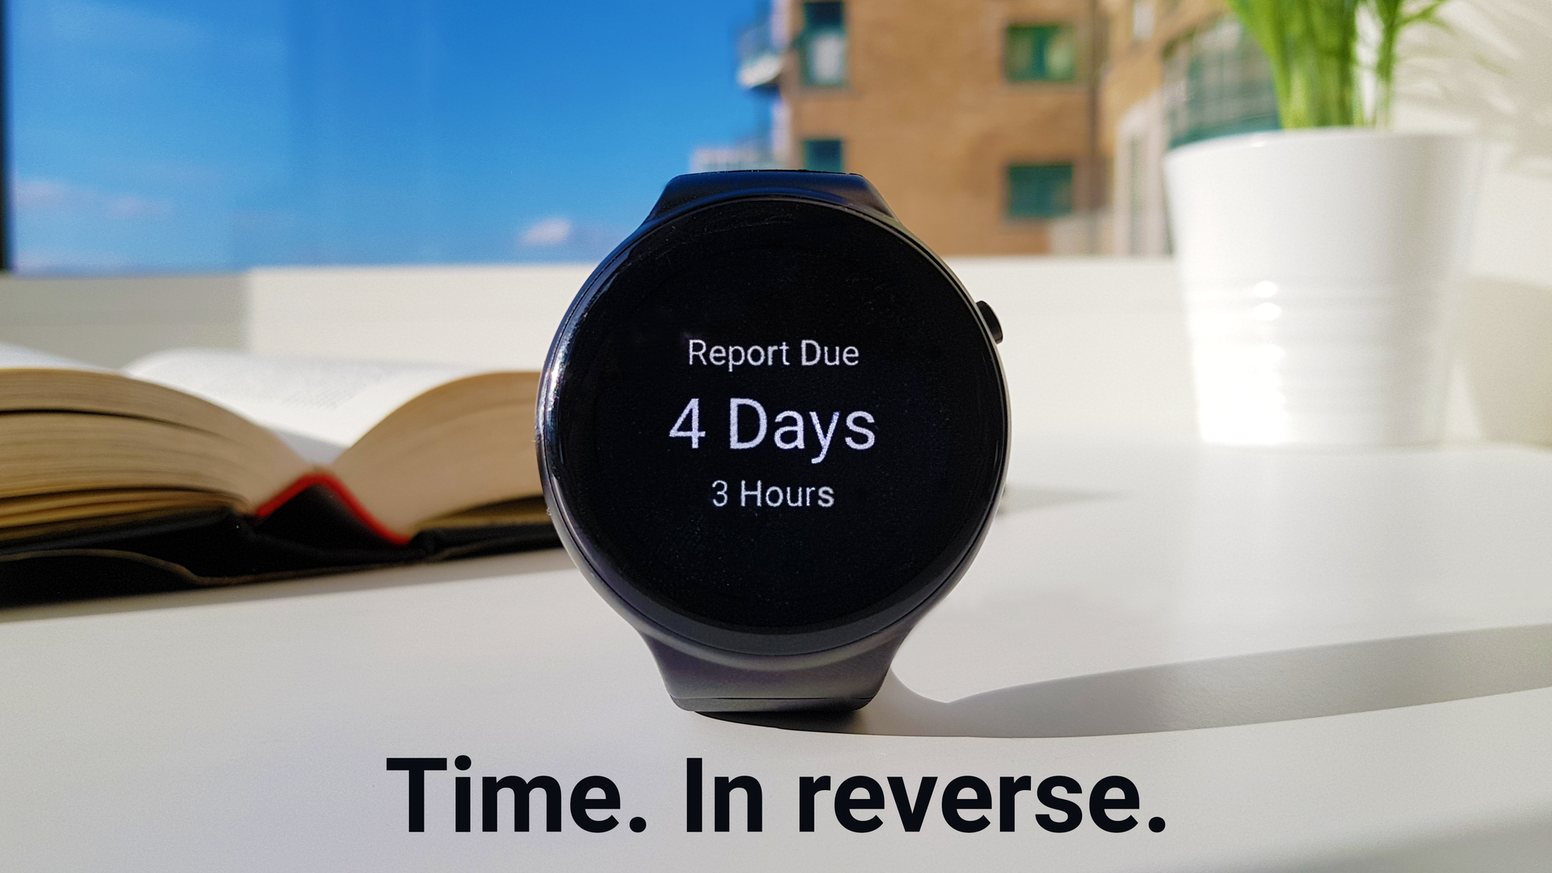 A watch dedicated to improving your mindset on time. emit shows you countdowns to your most important events, tasks and goals.